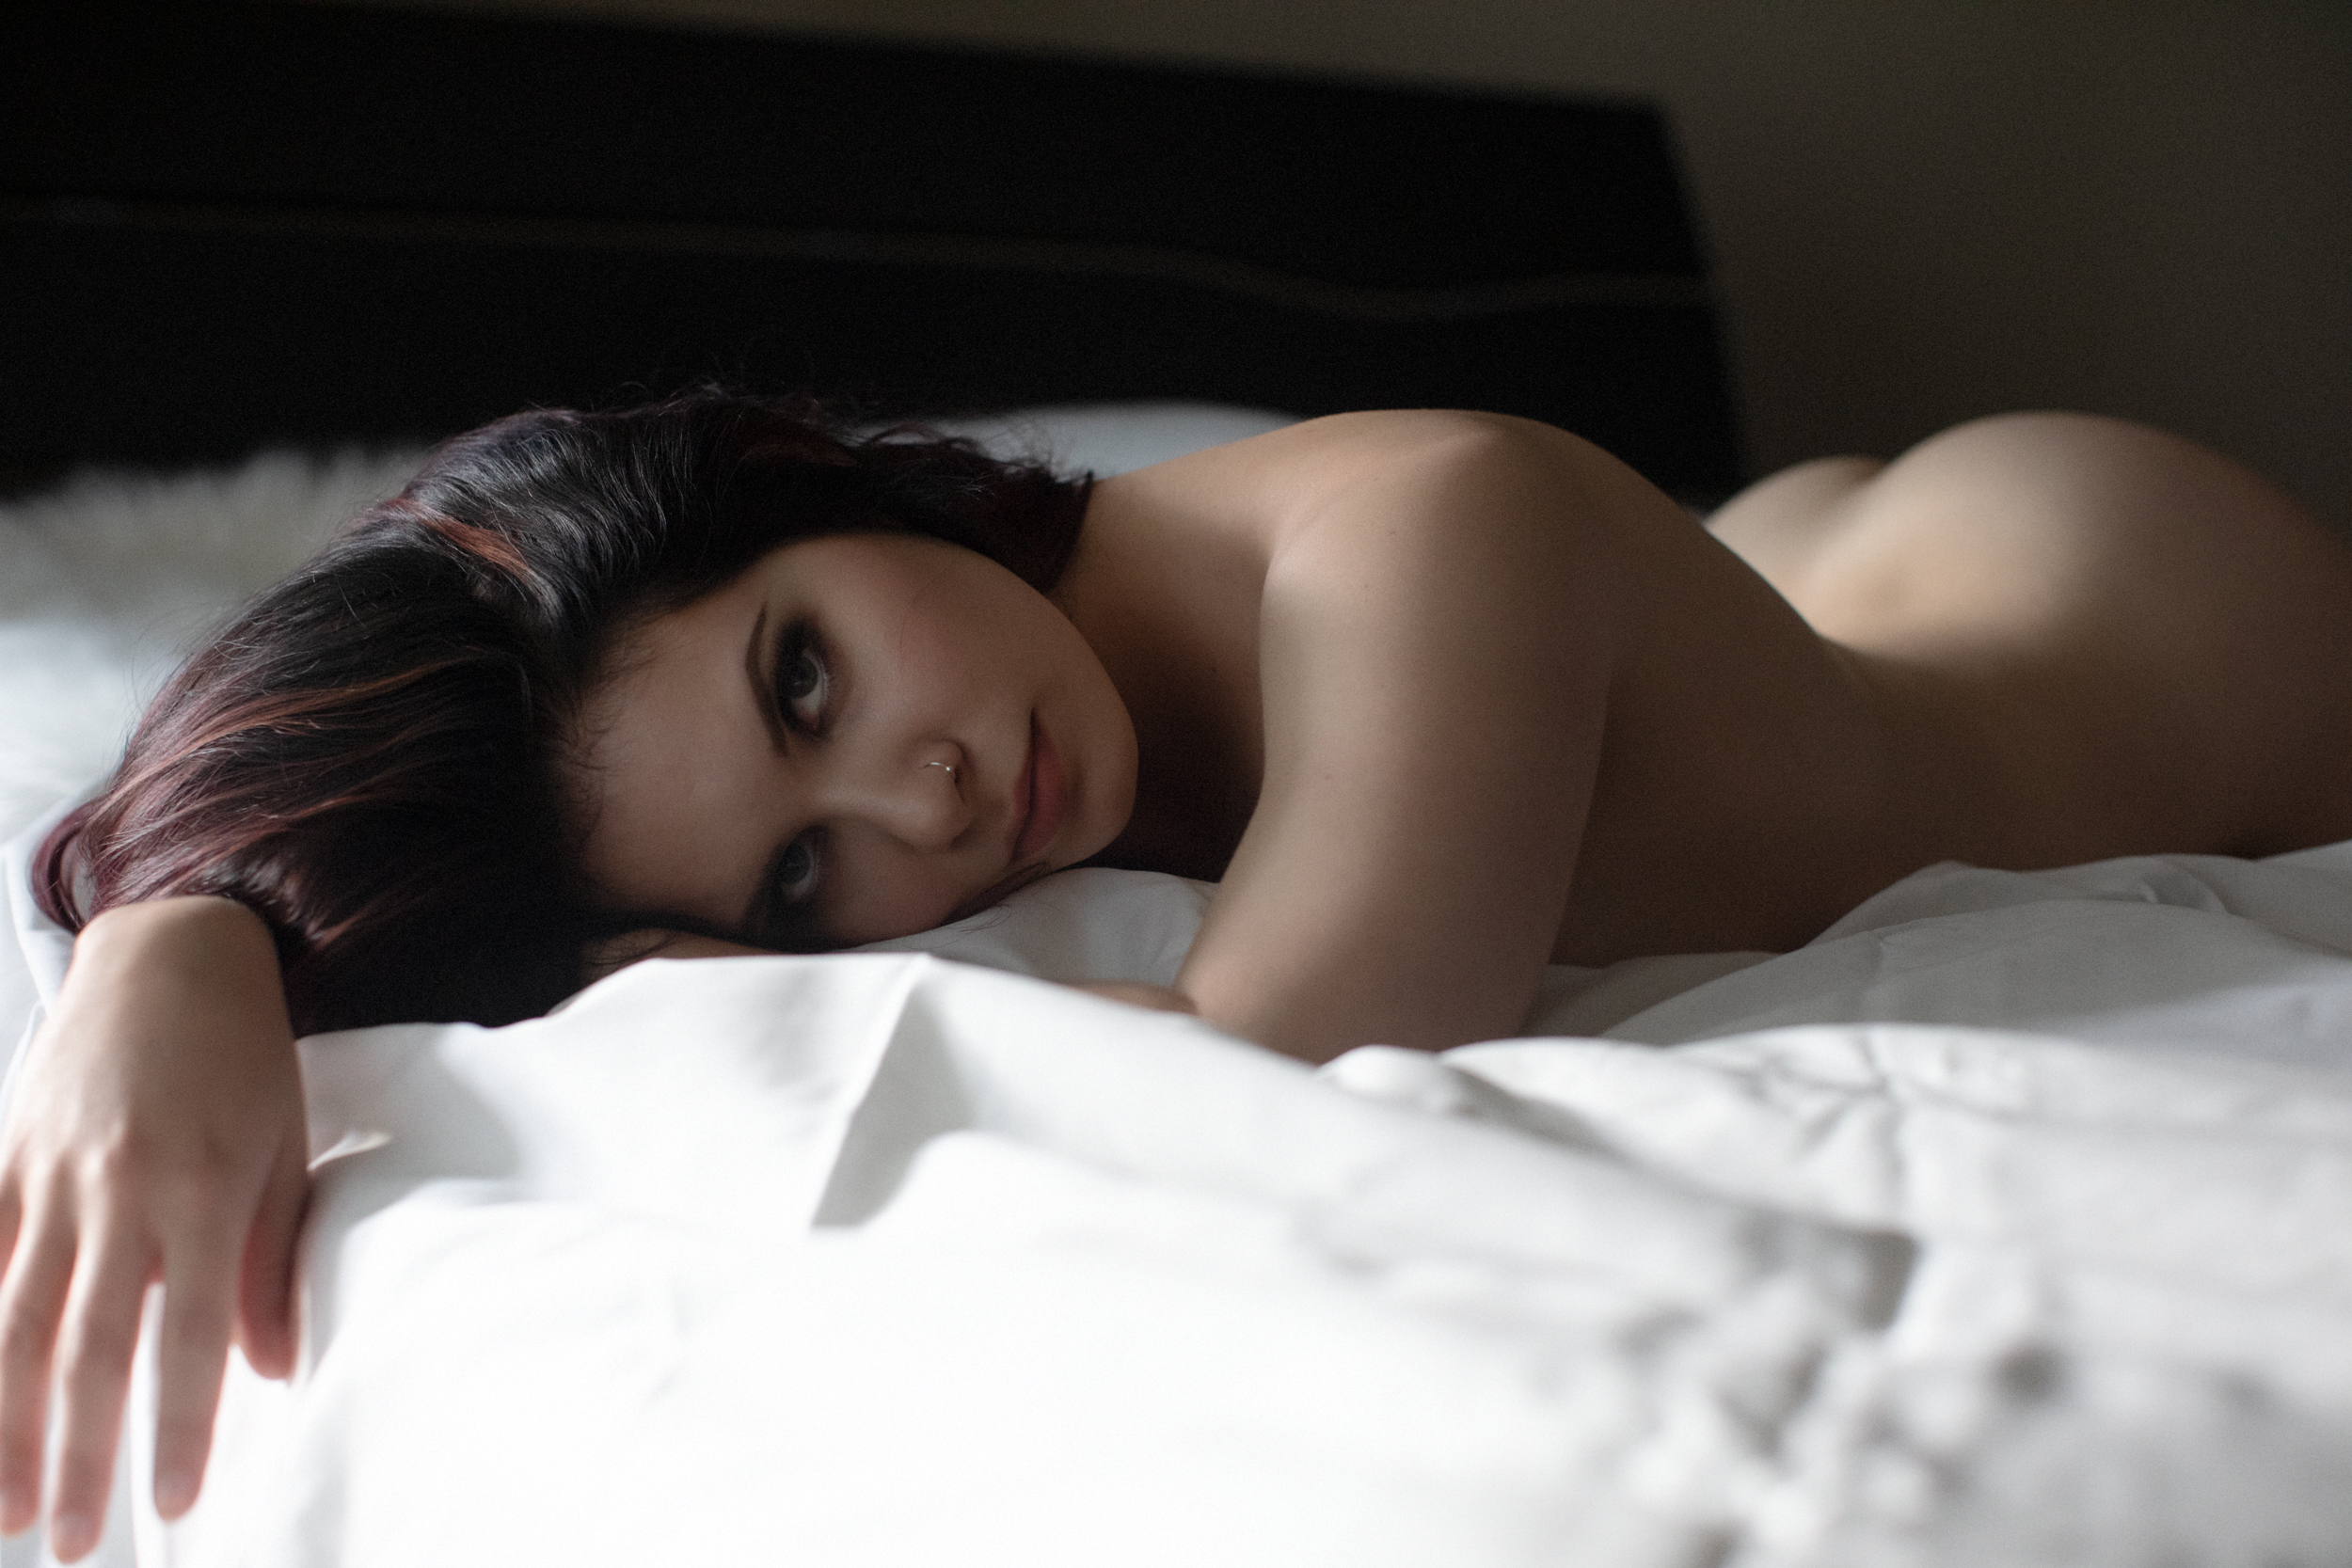 Boudoir-Photography-Victoria-Courtney-17.jpg